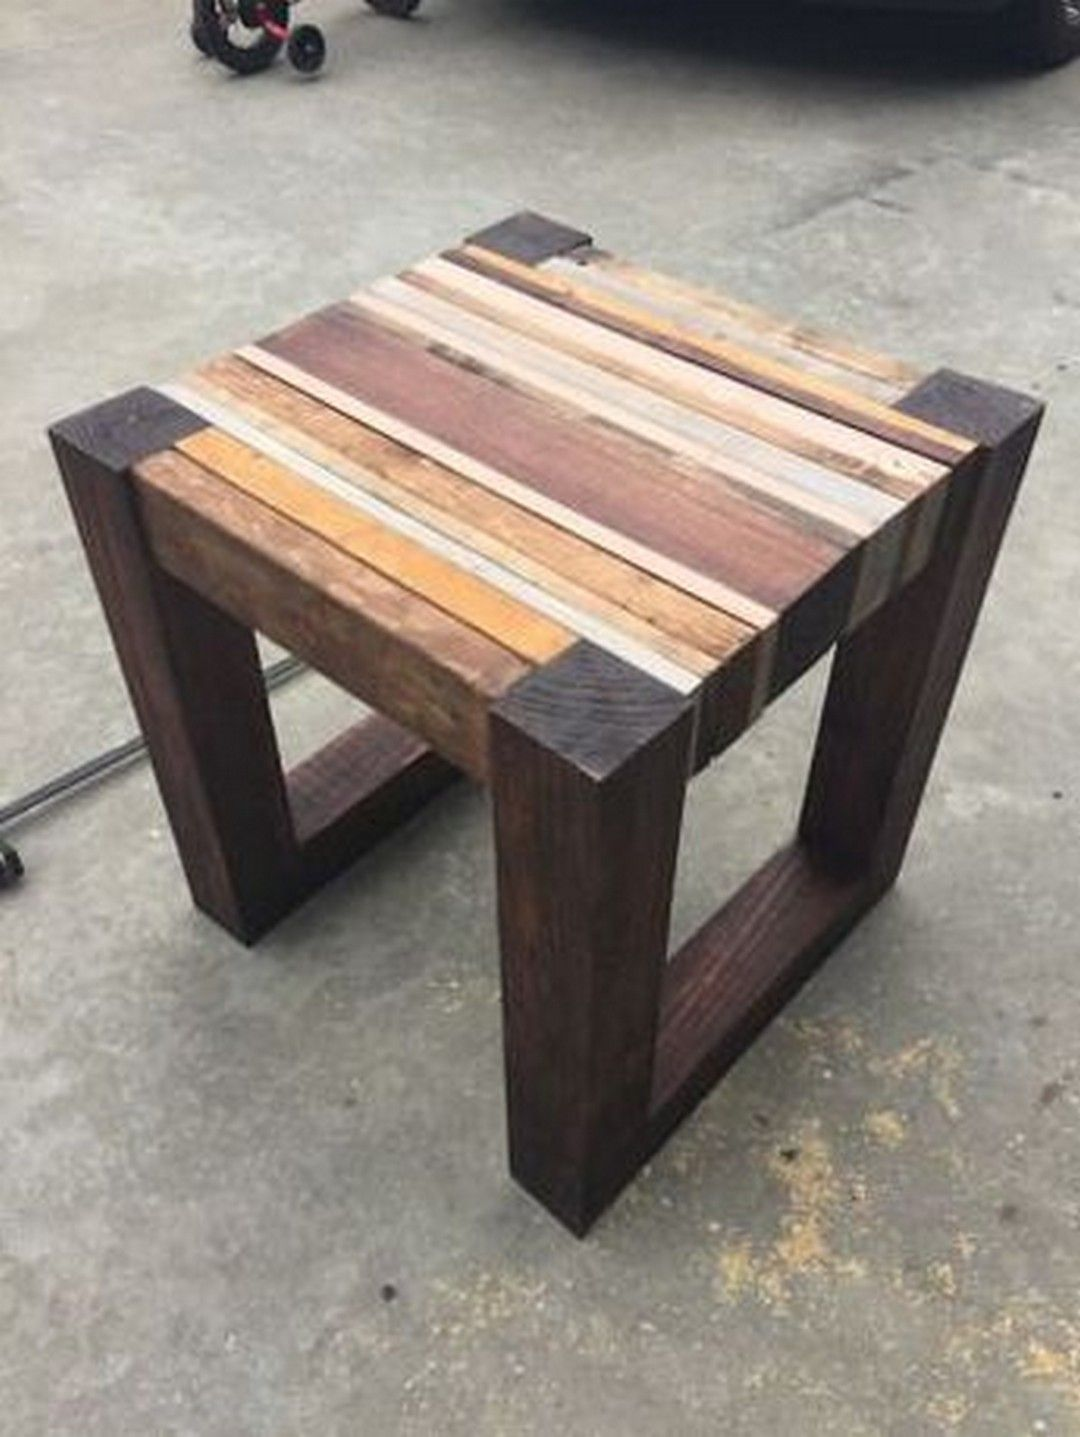 11 Awesome Things You Can Make With Scrap Wood | Scrap ... on Cool Small Woodworking Projects  id=44237